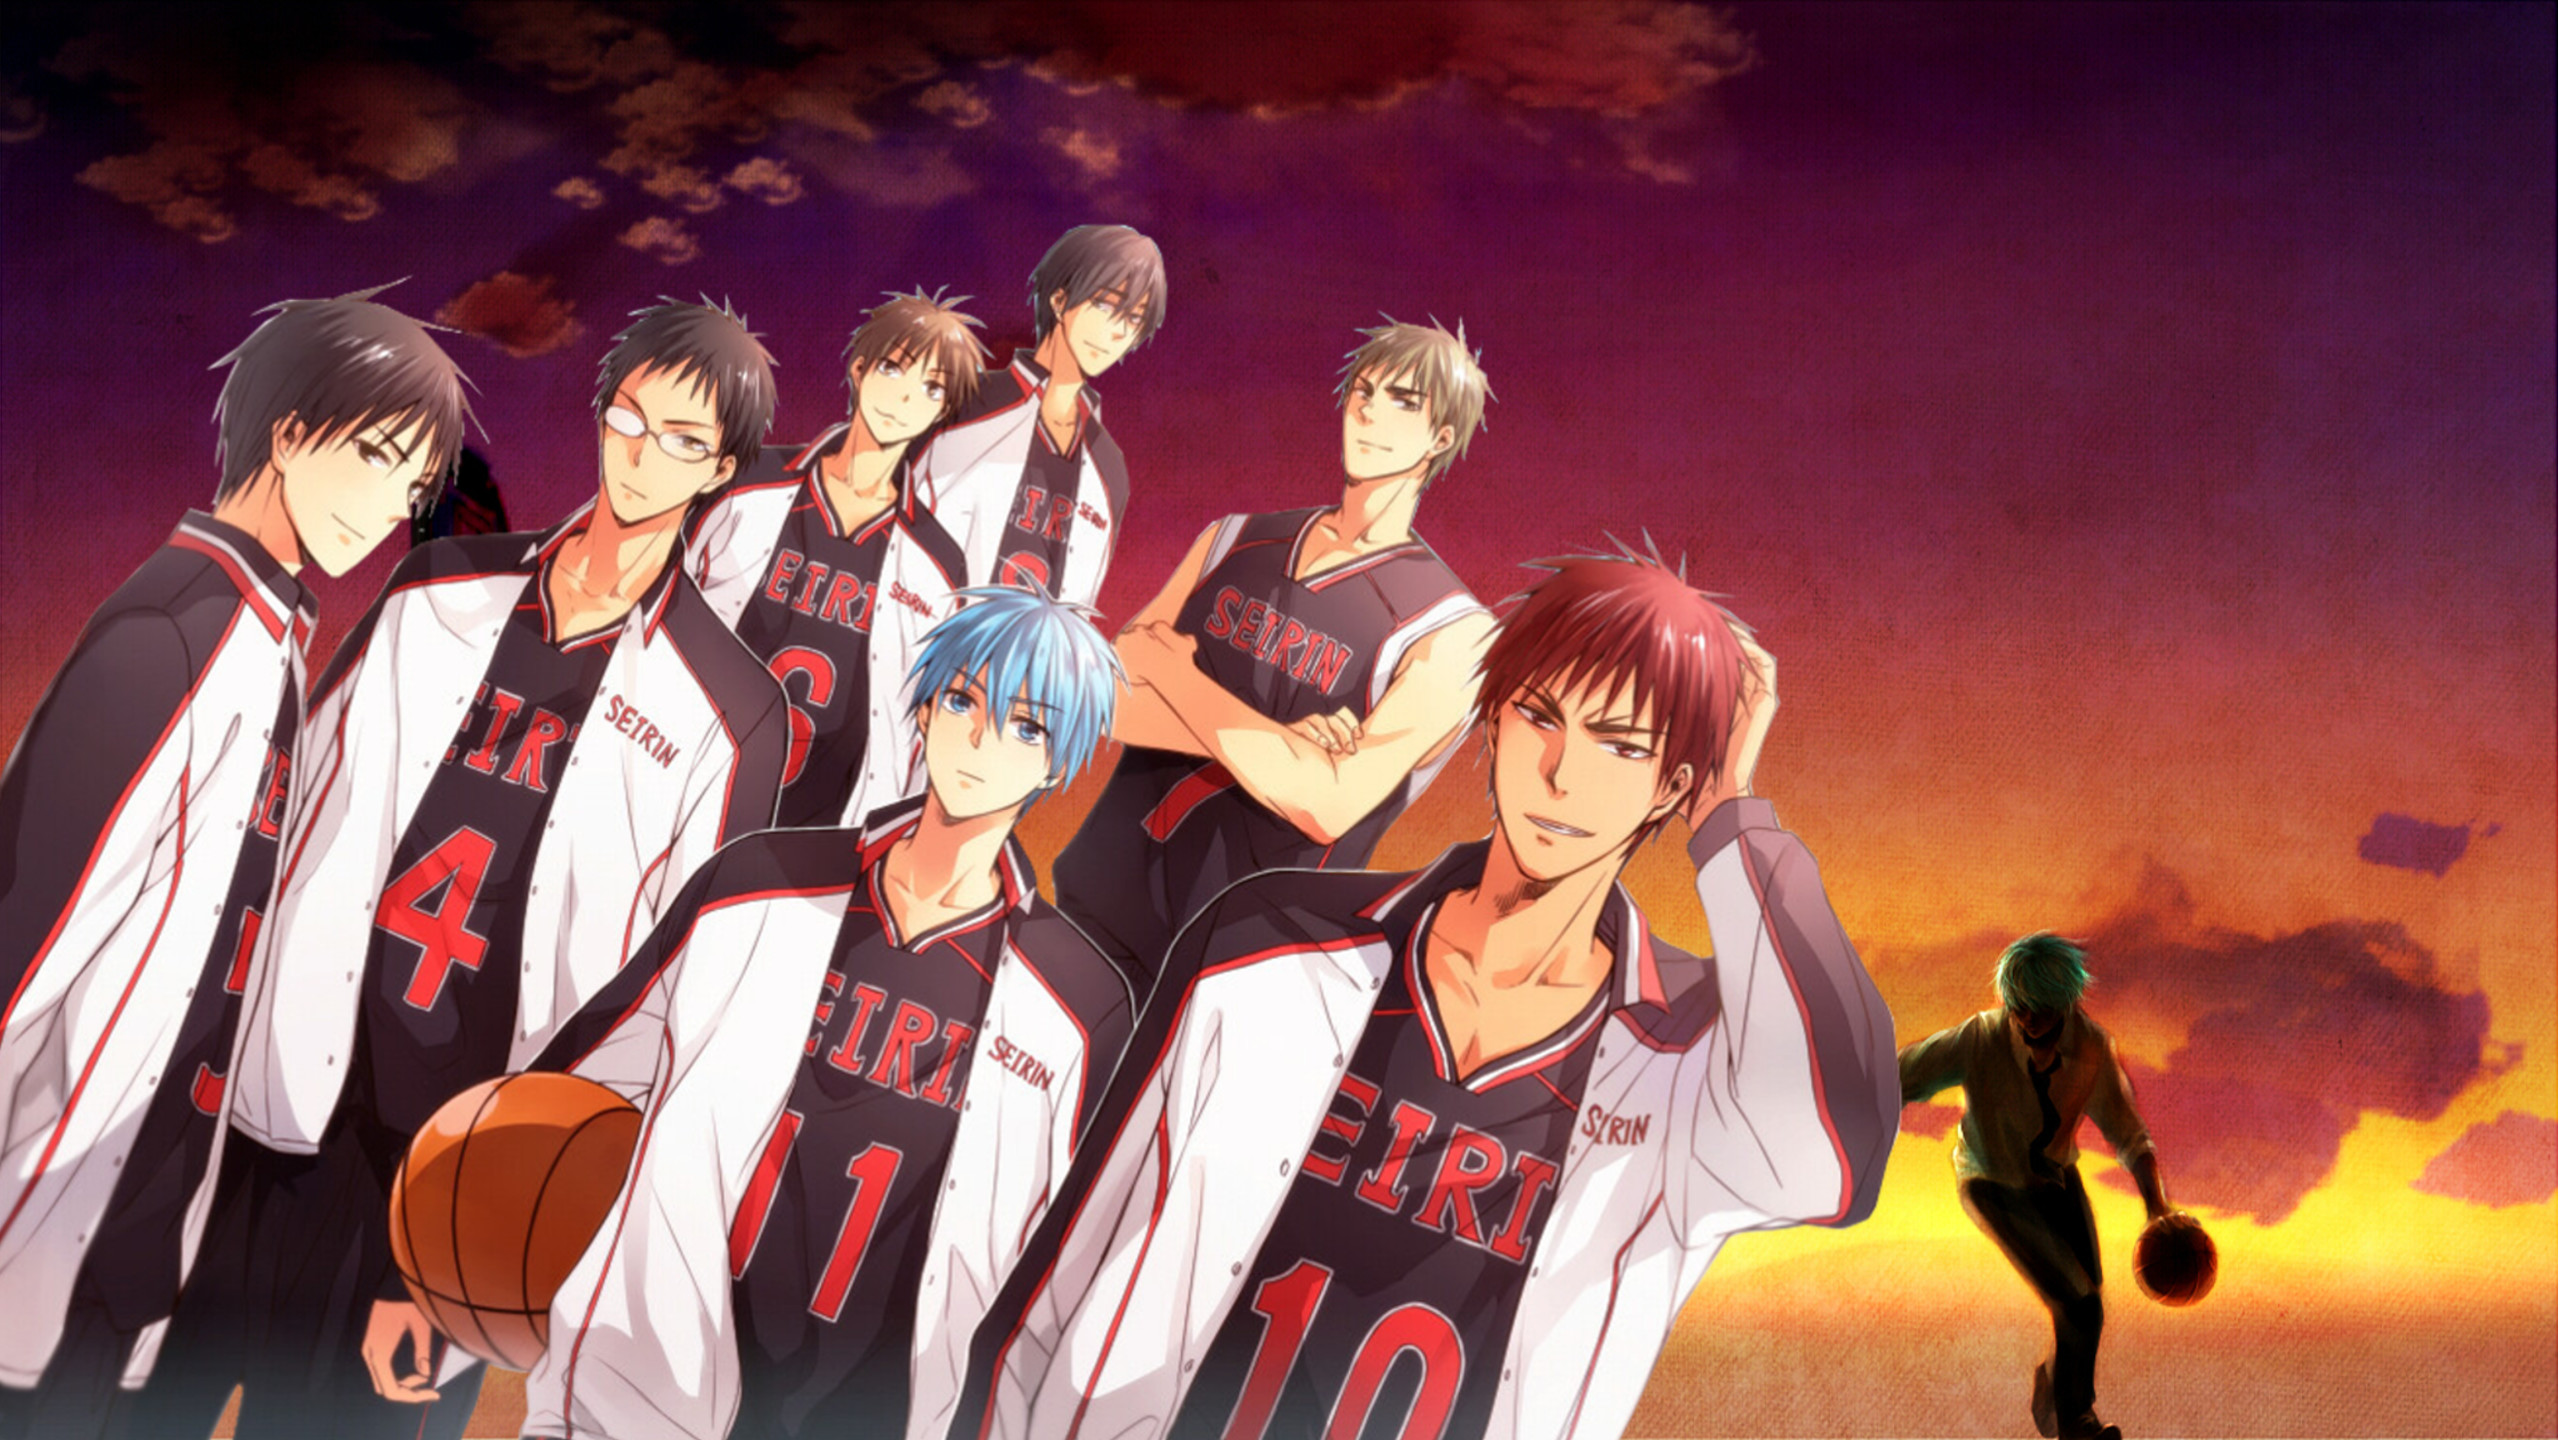 2560x1440 Kuroko No Basket Wallpaper By Zsuetam2000 On Deviantart